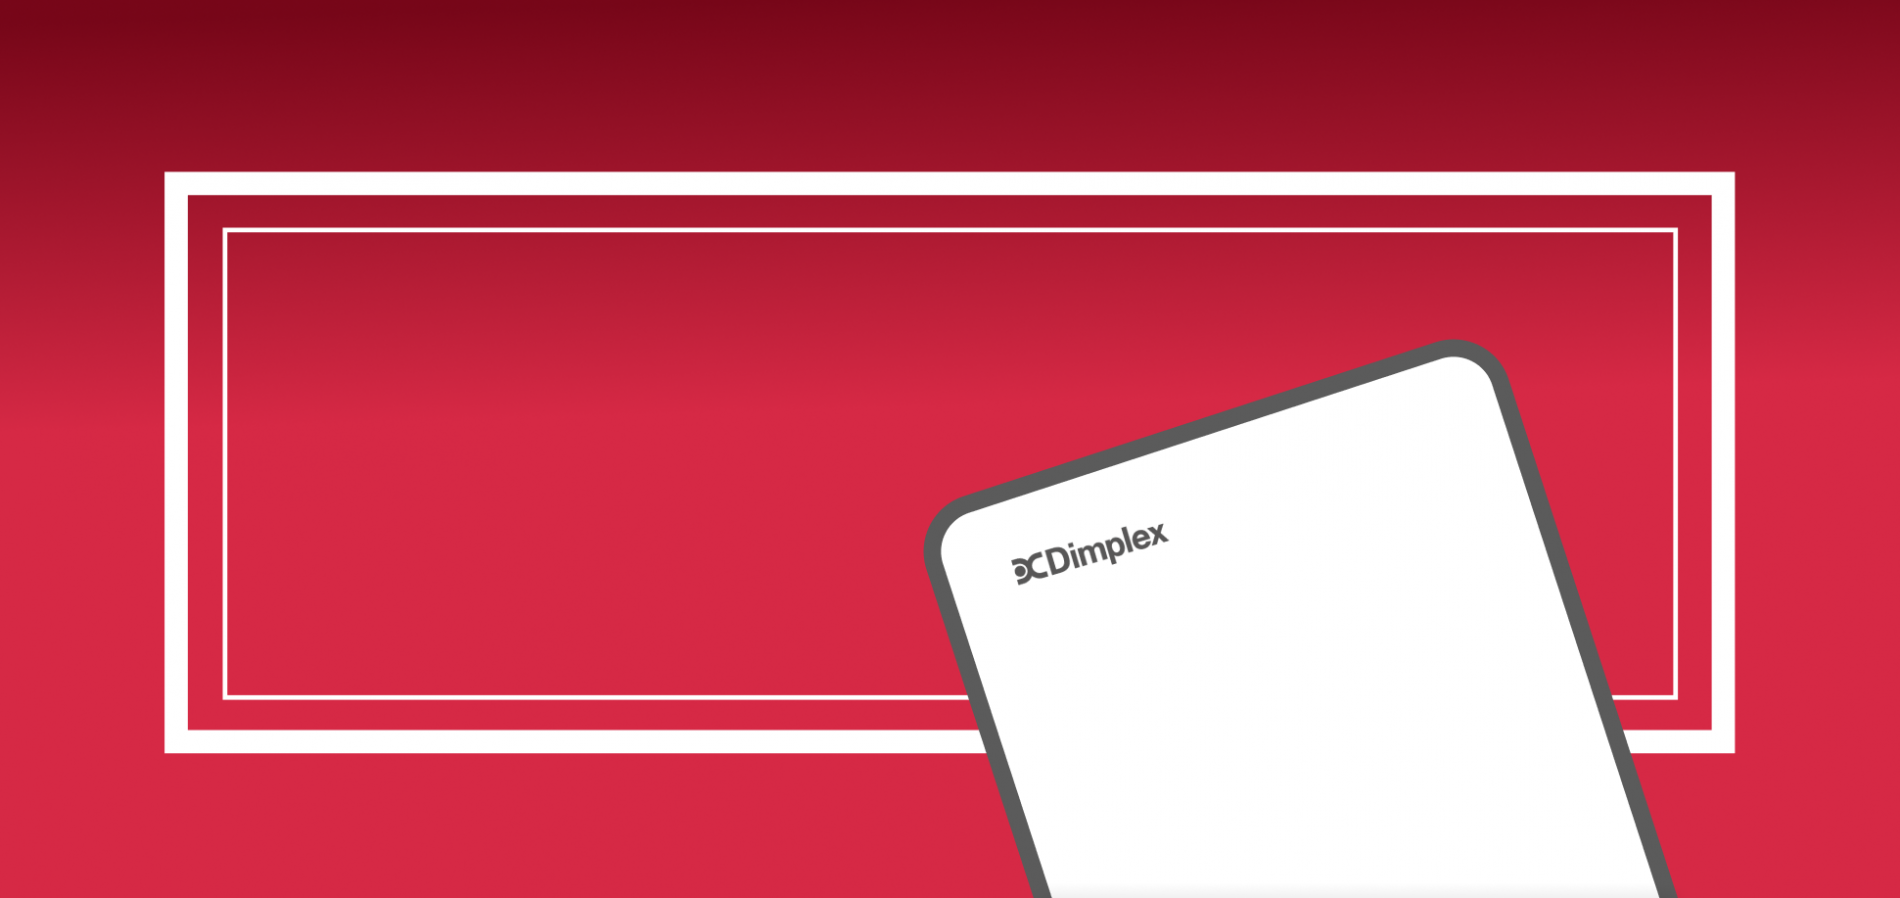 red banner for dimplex hub